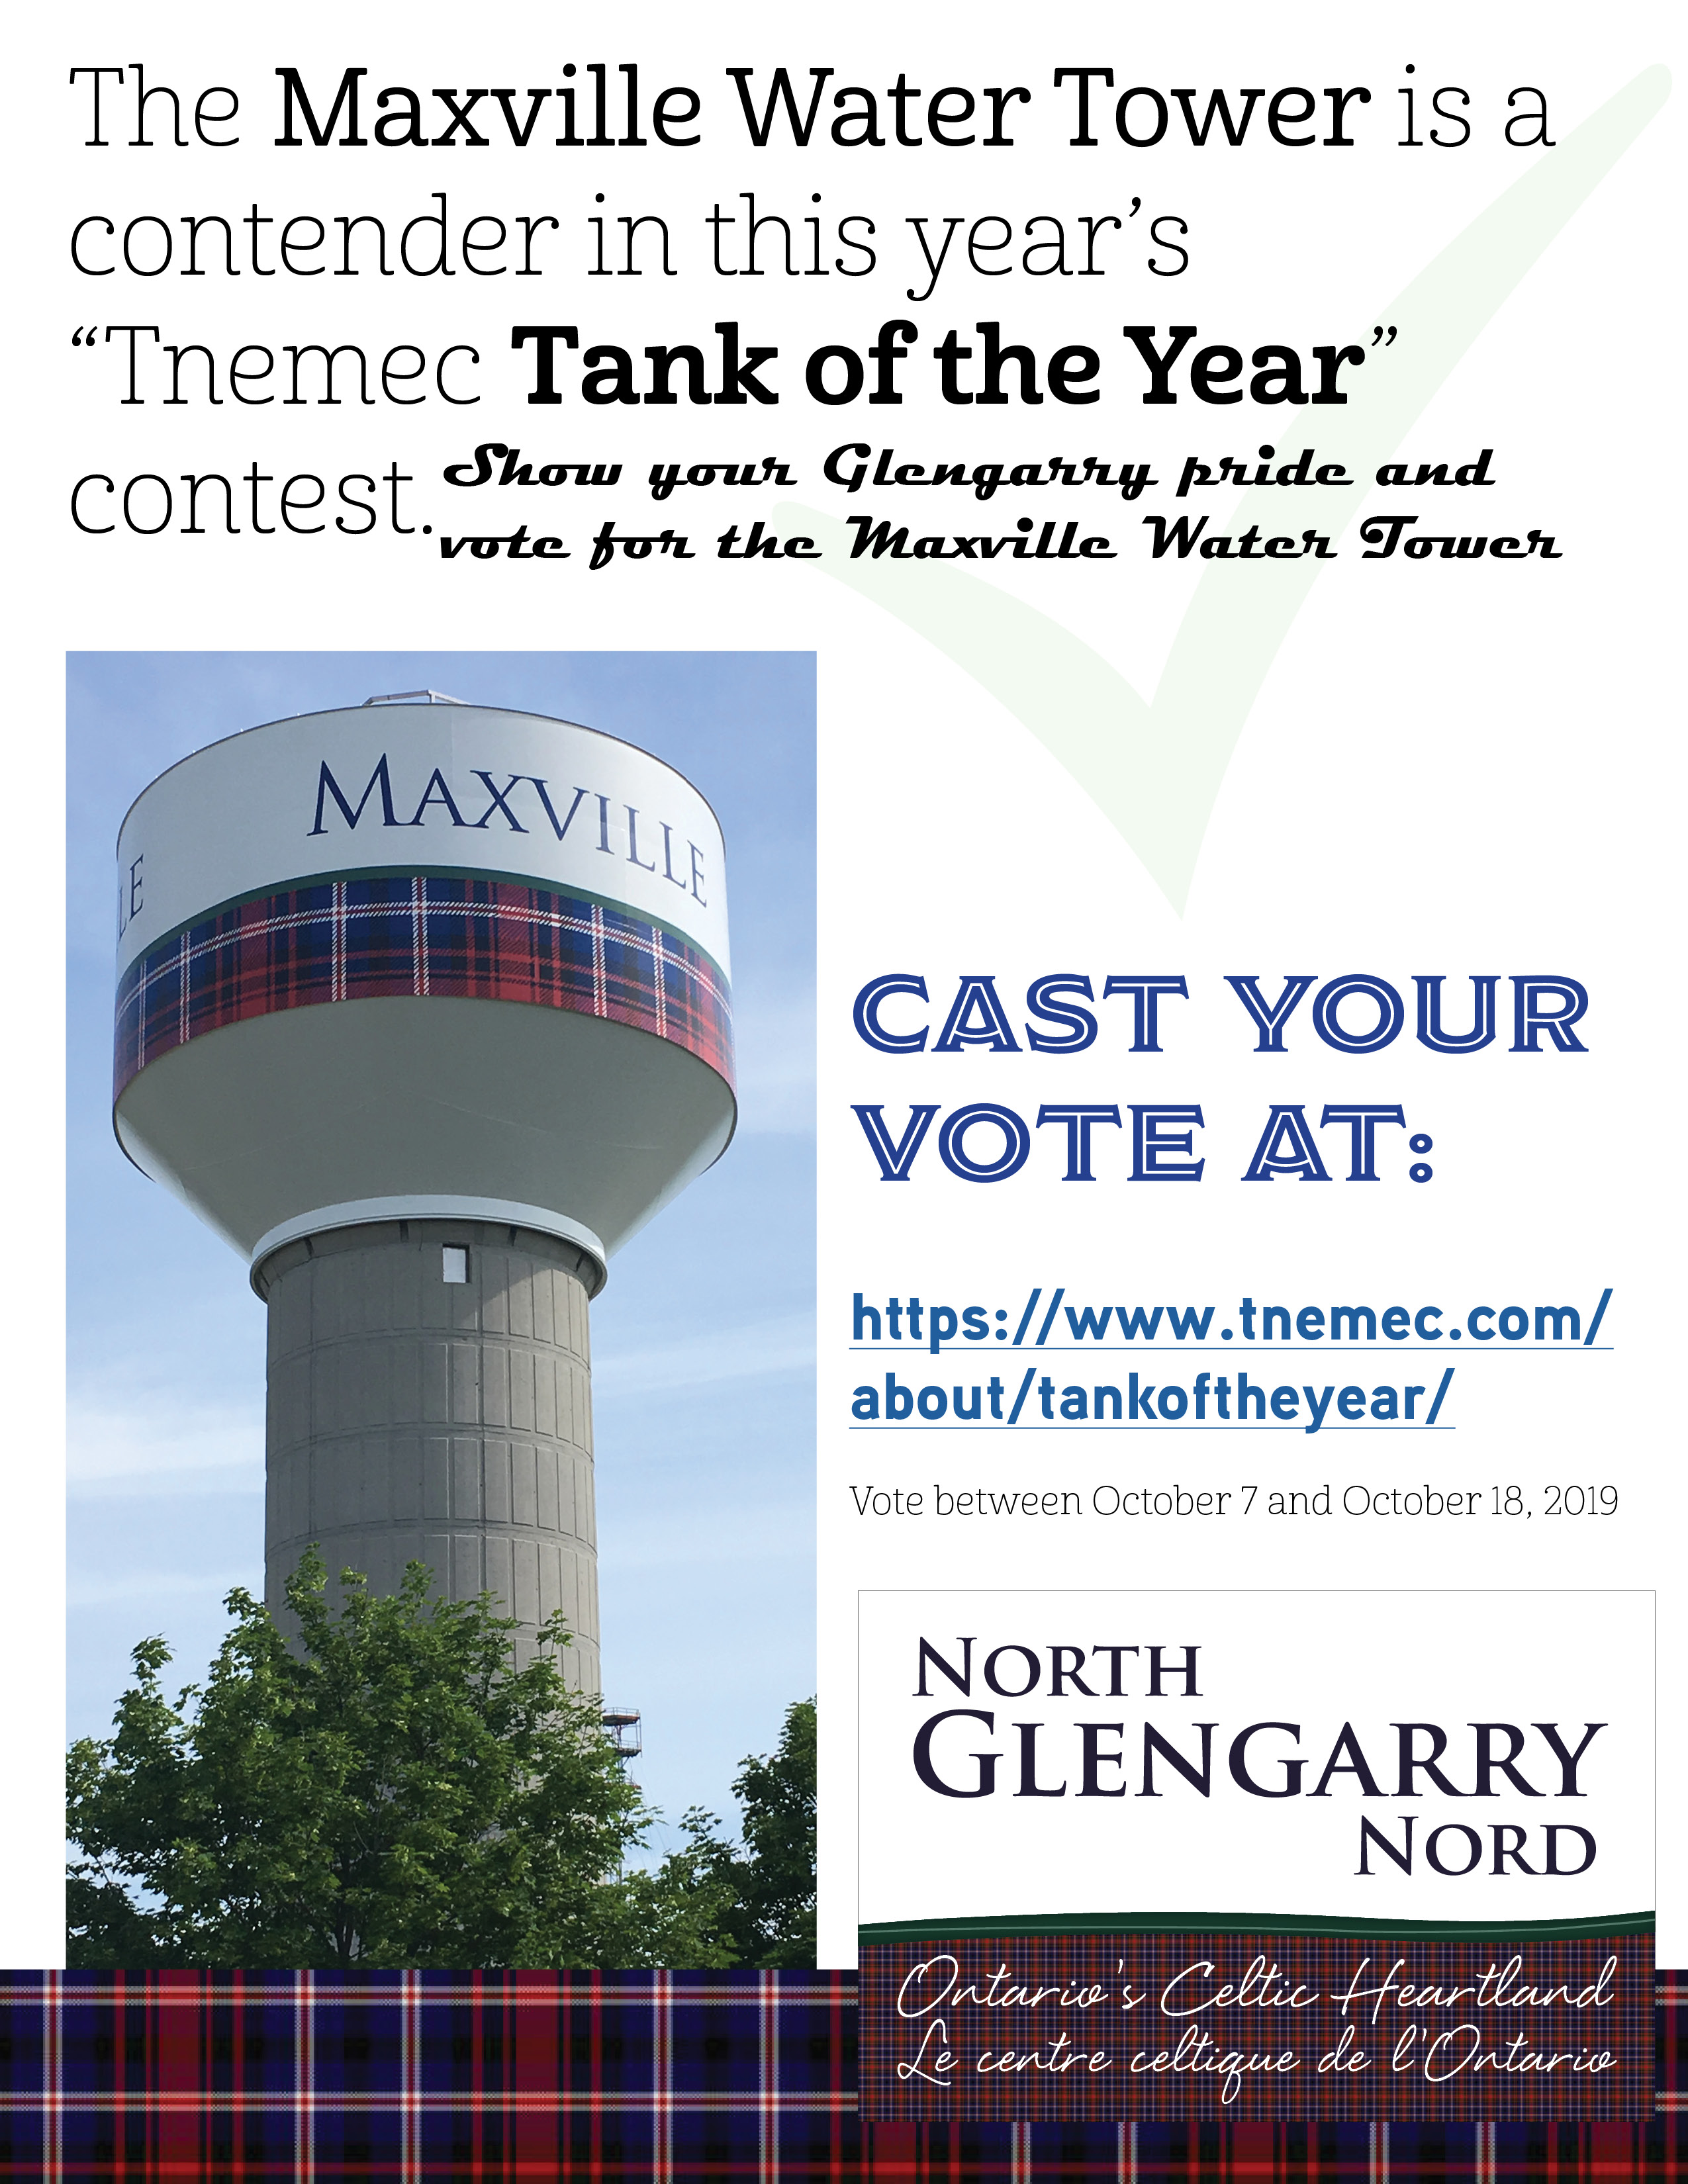 Tnemec Tank of the year contest